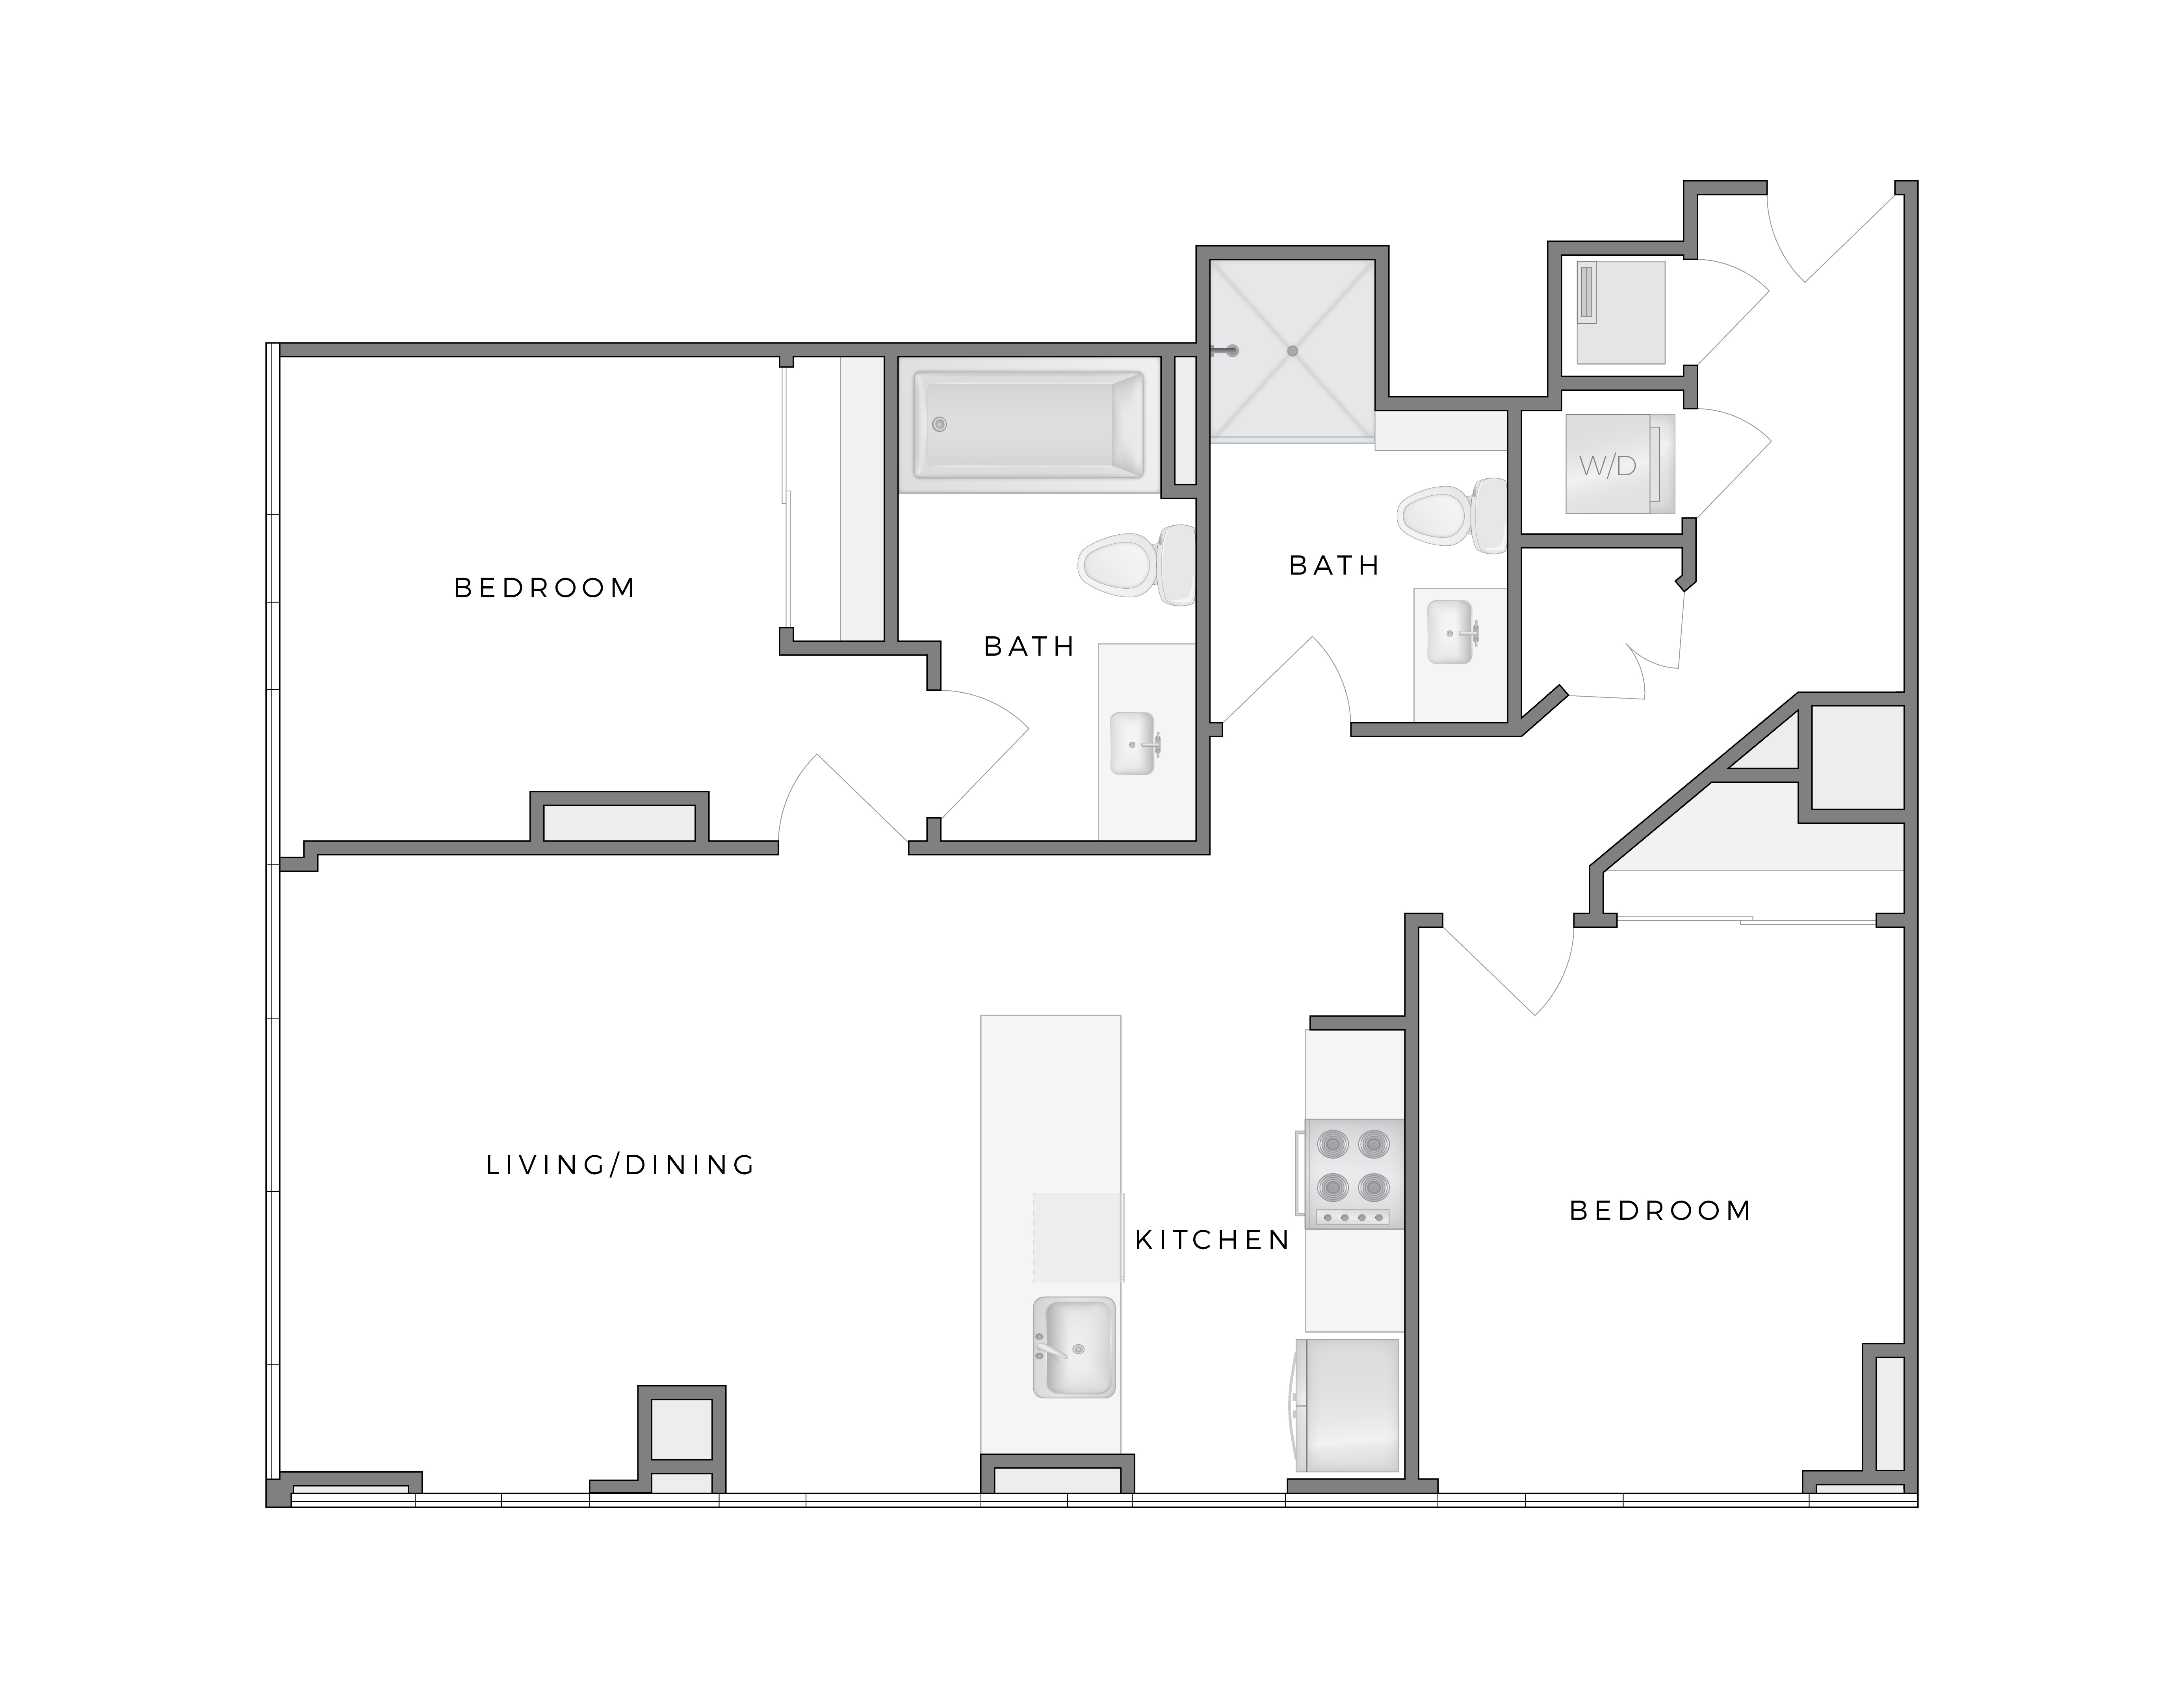 Atelier Hopper 2 apartment floorplan diagram with two bedrooms, two bathrooms, kitchen, and living dining area